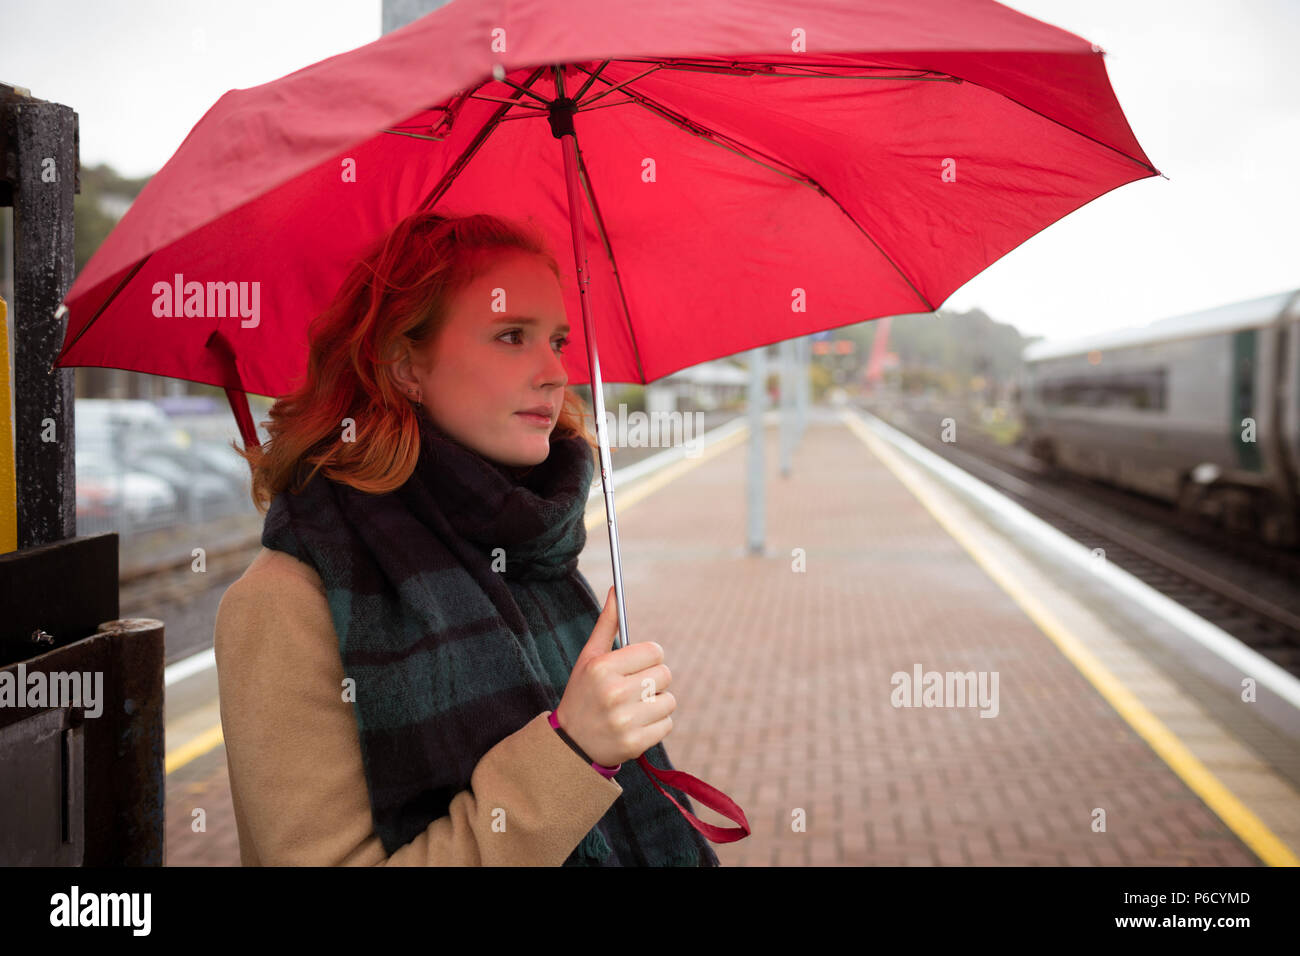 Young woman with umbrella waiting for train on platform - Stock Image